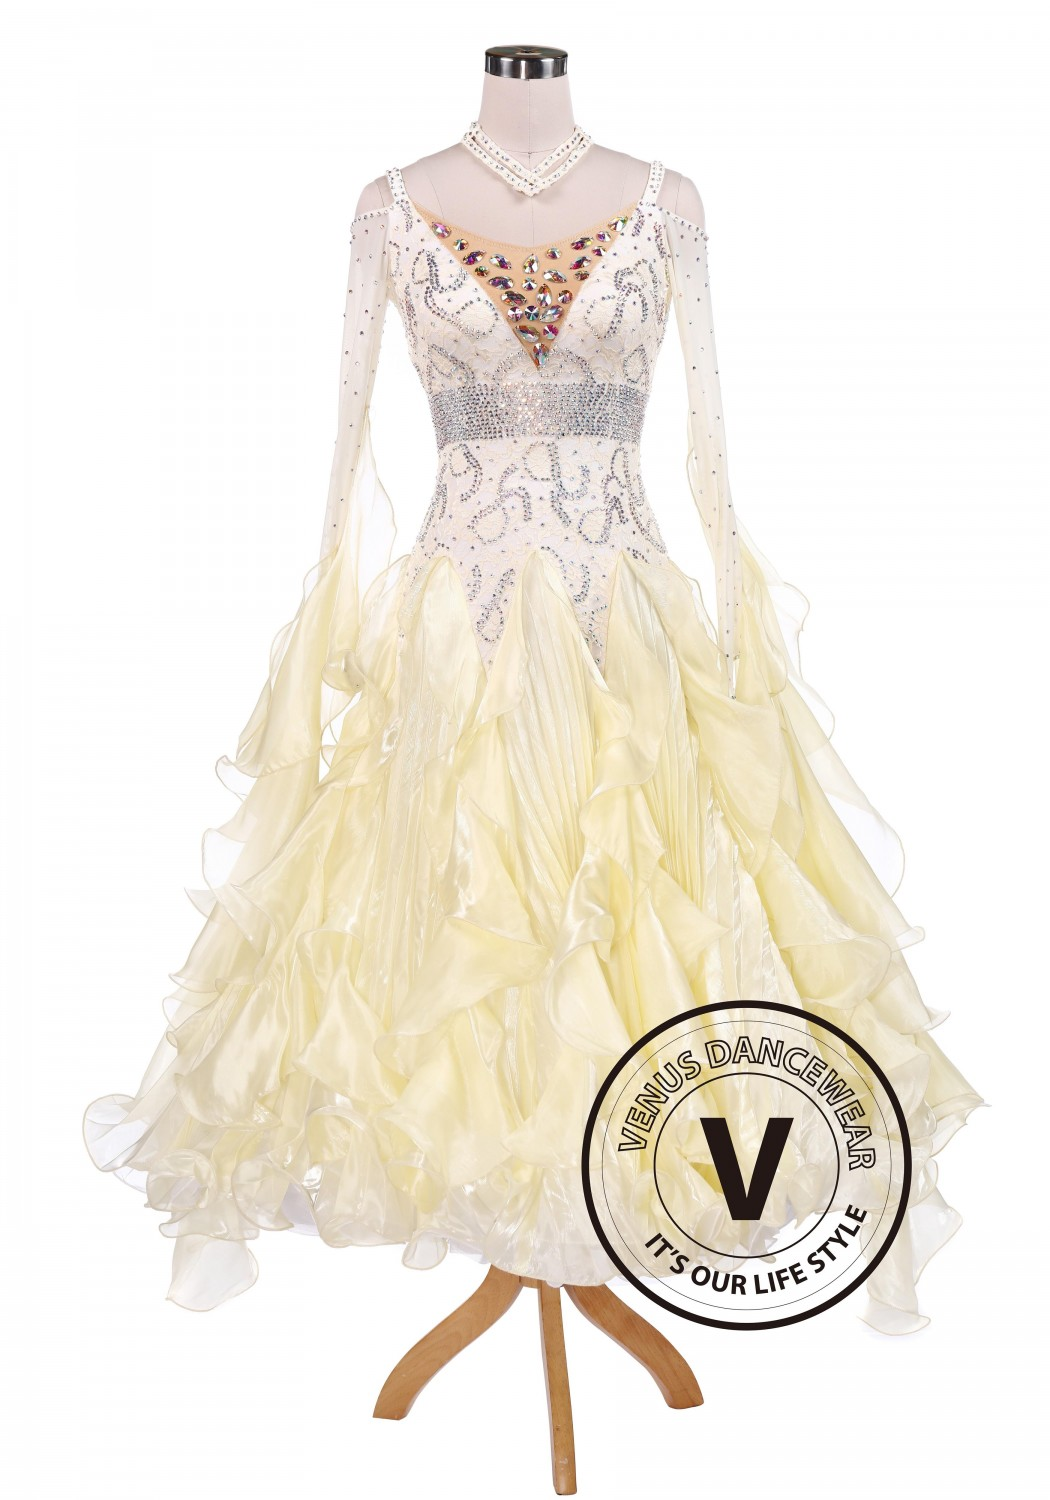 Bright Cream Waltz Tango Competition Ballroom Dance Dress